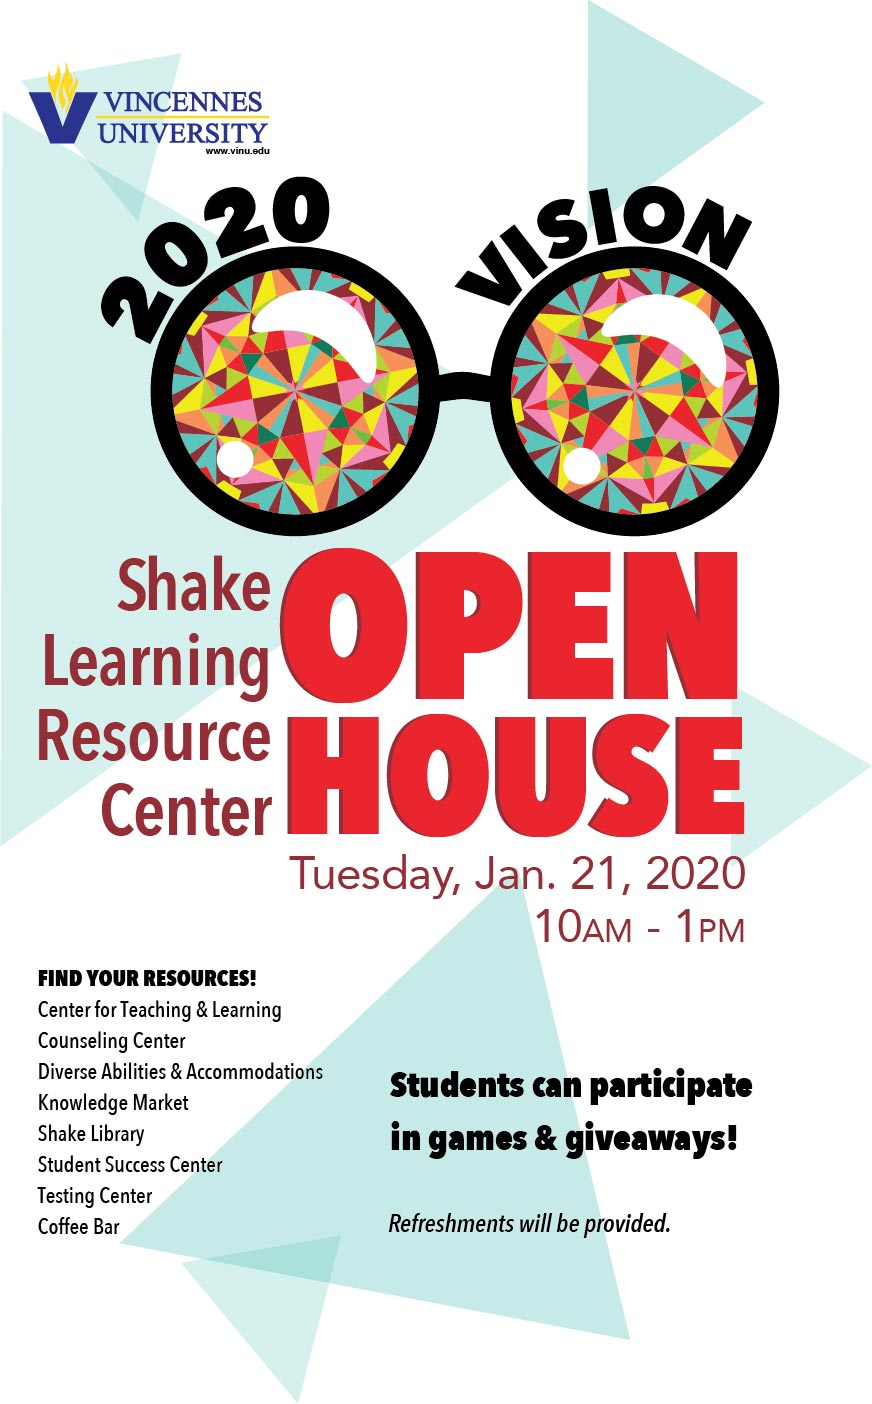 Shake Learning Resource Center Open House